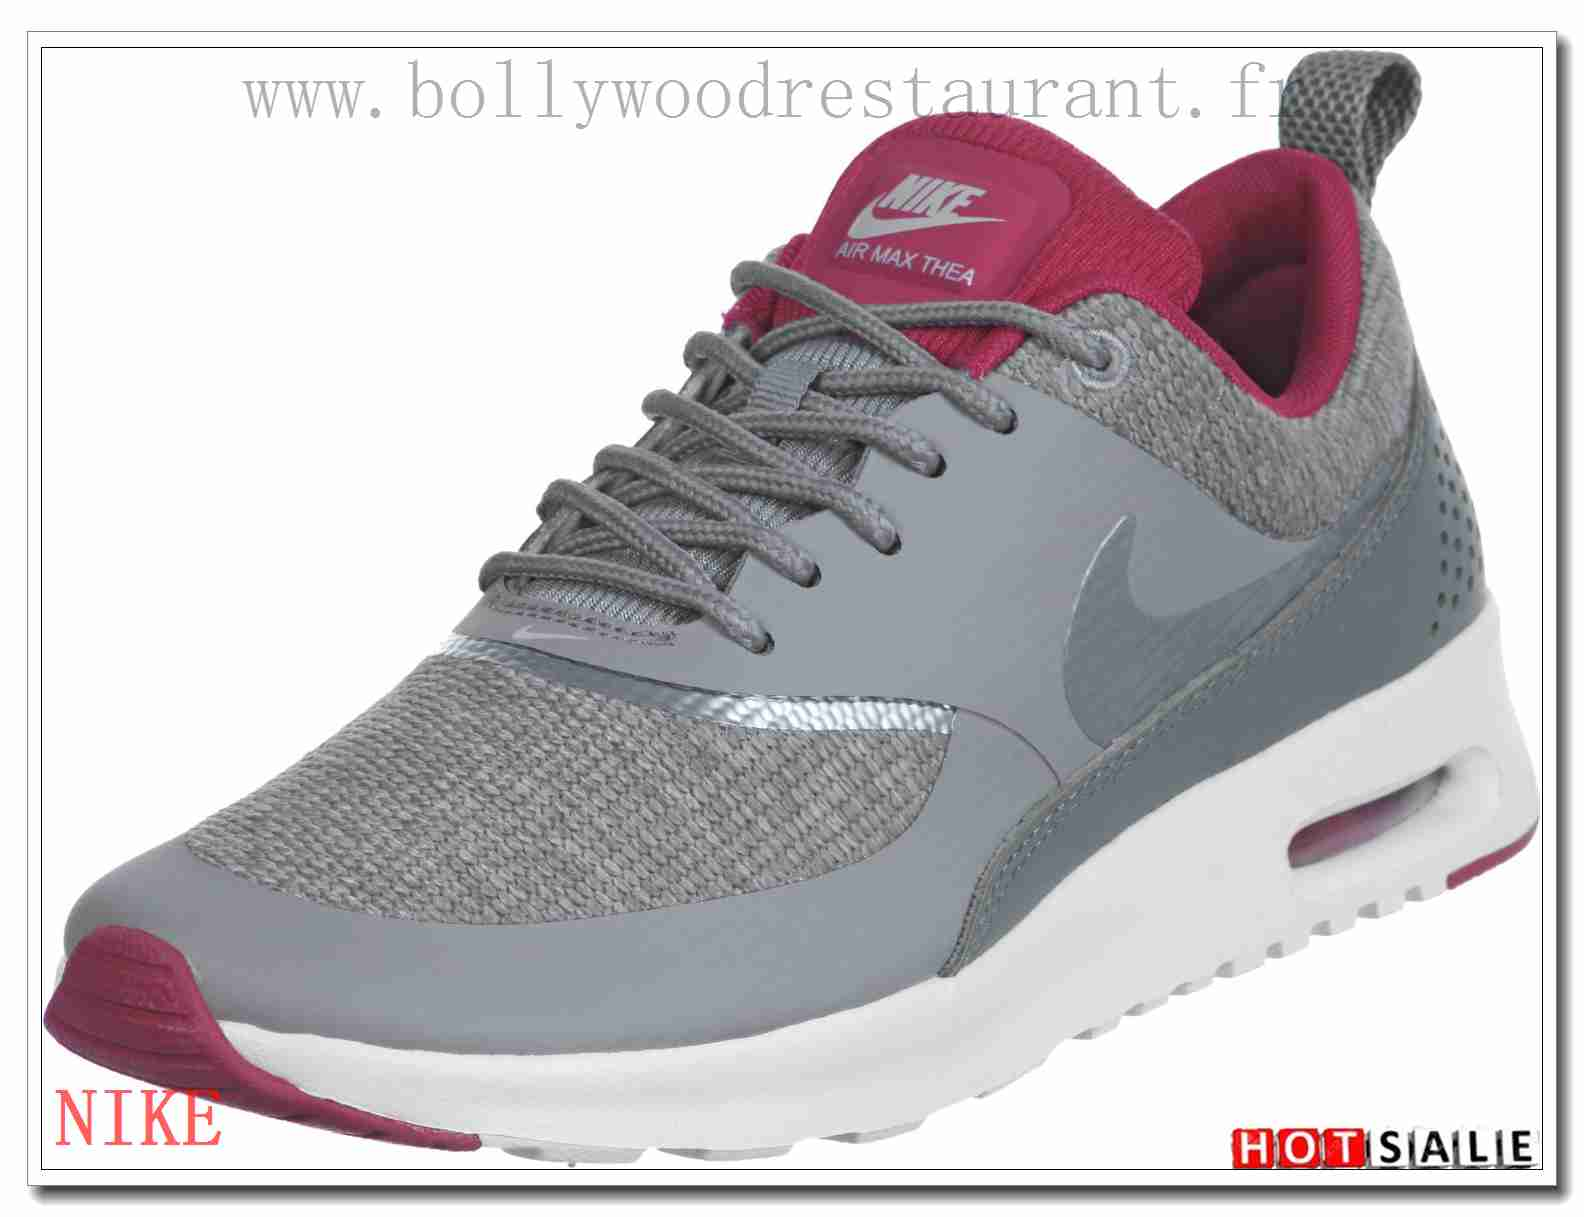 new product 2372f 0a572 TY3000 Classique 2018 Nouveau style Nike Air Max Thea - Femme Chaussures -  Promotions Vente -